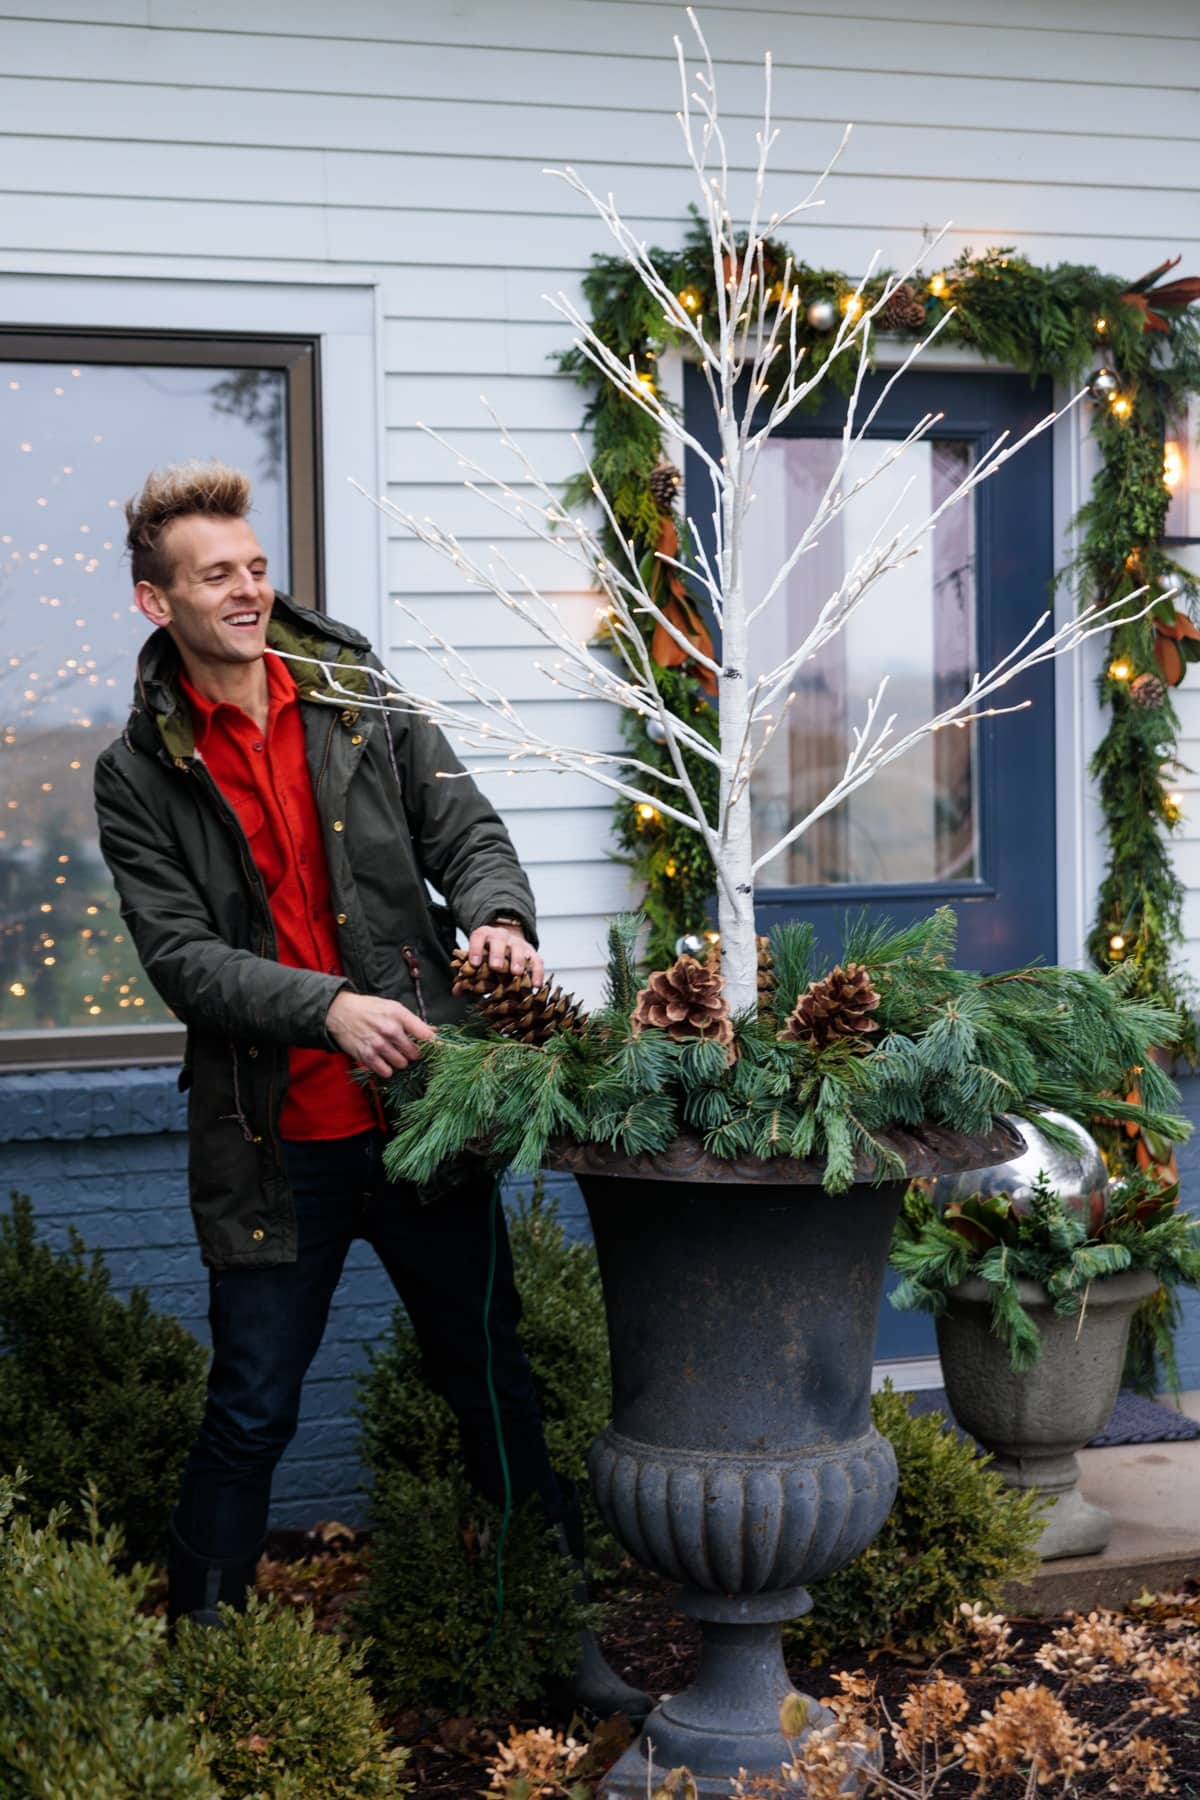 Outdoor Christmas Decor This Year   Wyse Guide